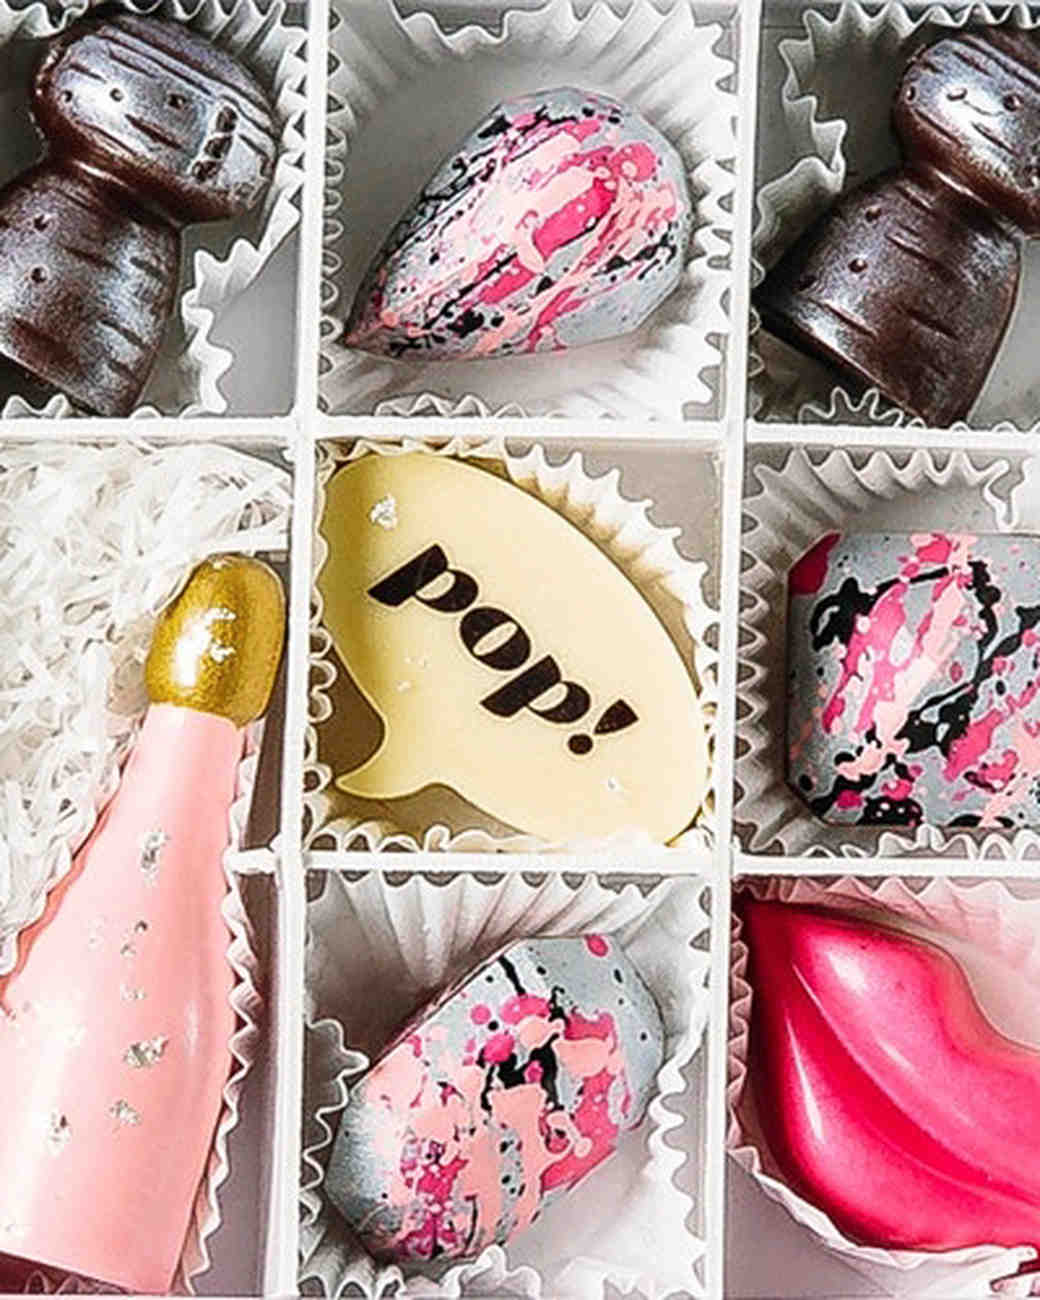 engagement-gifts-maggie-louise-confections-0516.jpg